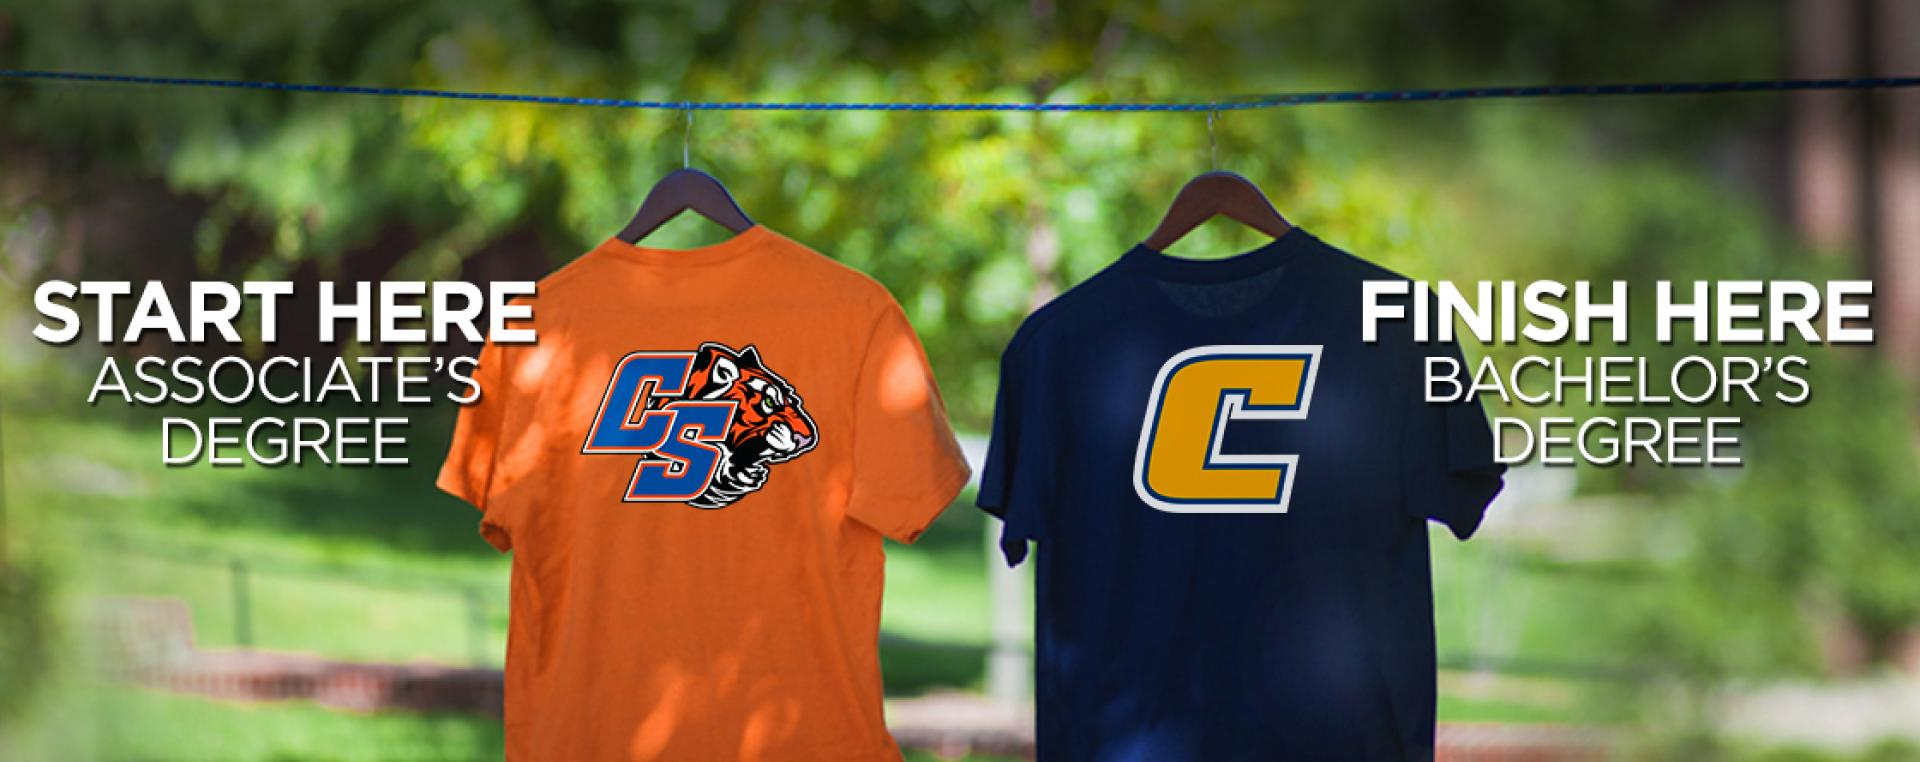 ChattState and UTC t-shirts